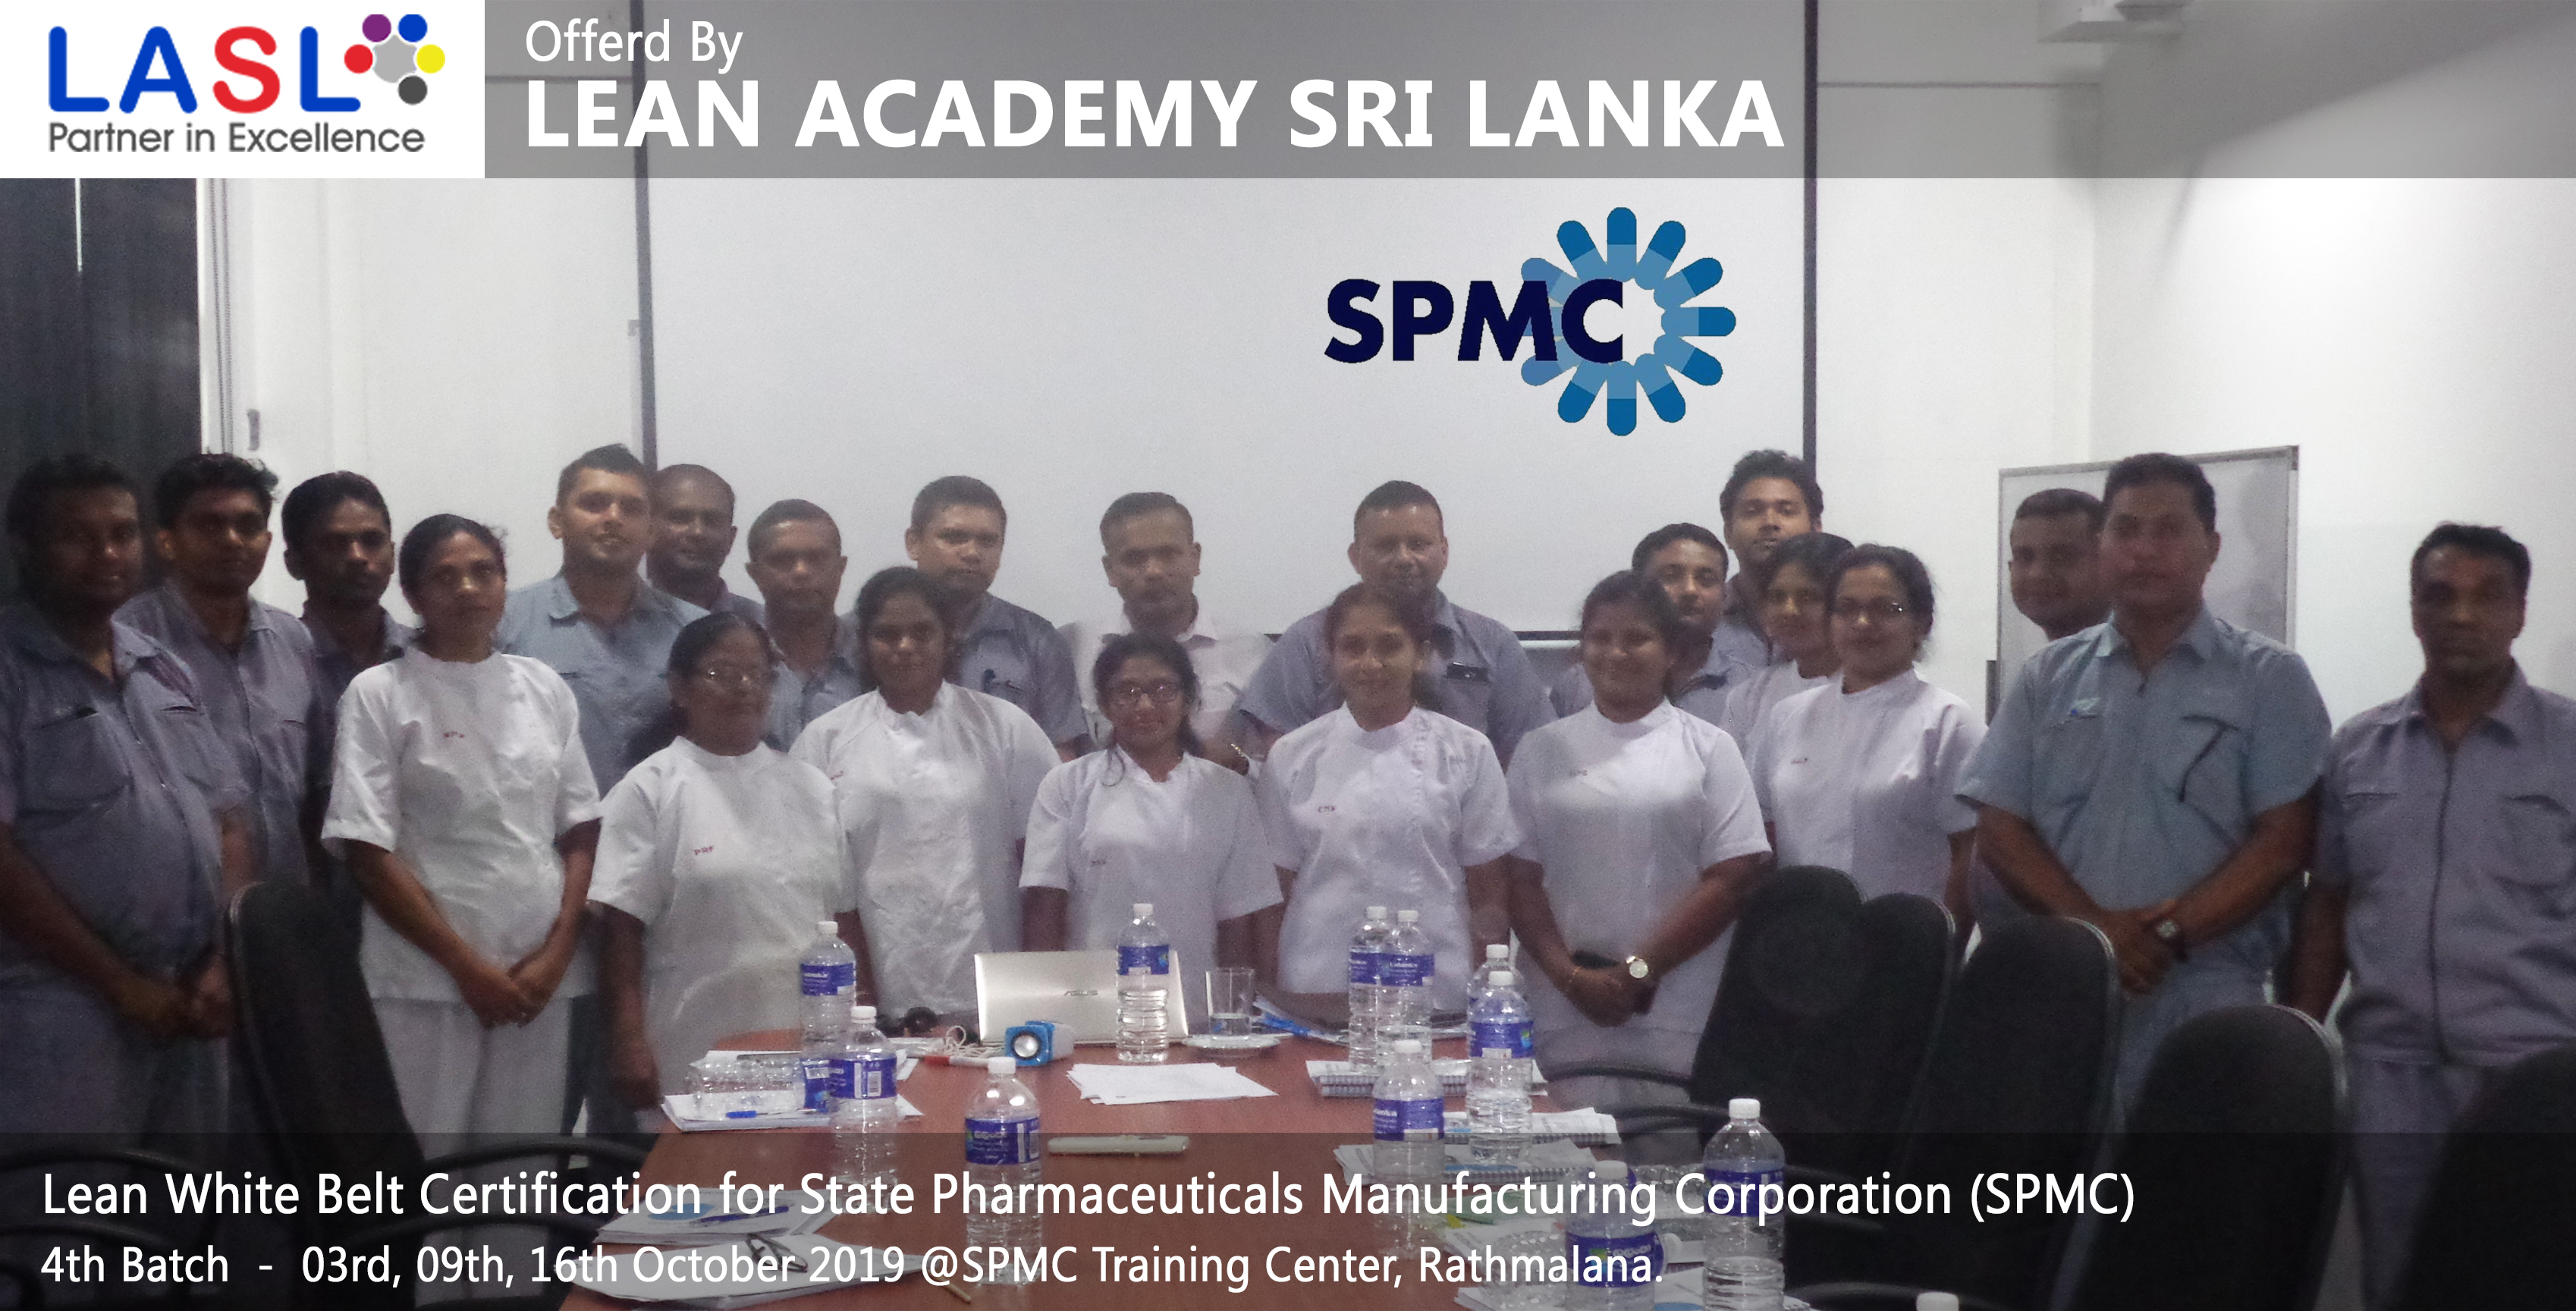 SPMC start their lean journey with LASL